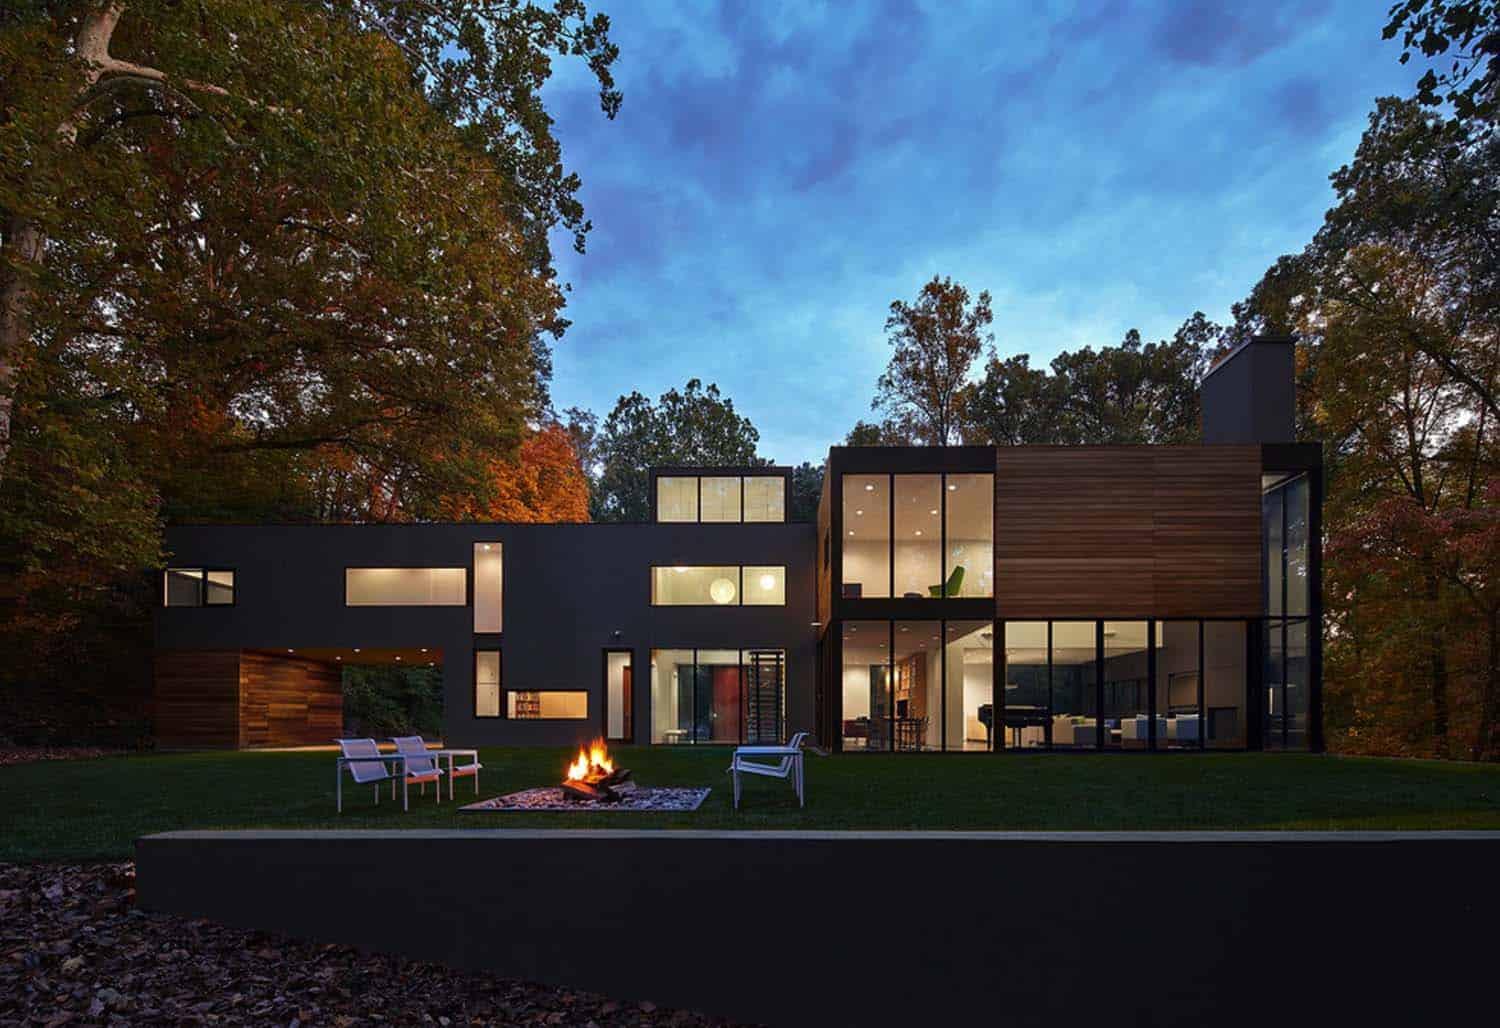 Architecture Modern Home-Robert Gurney Architect-26-1 Kindesign